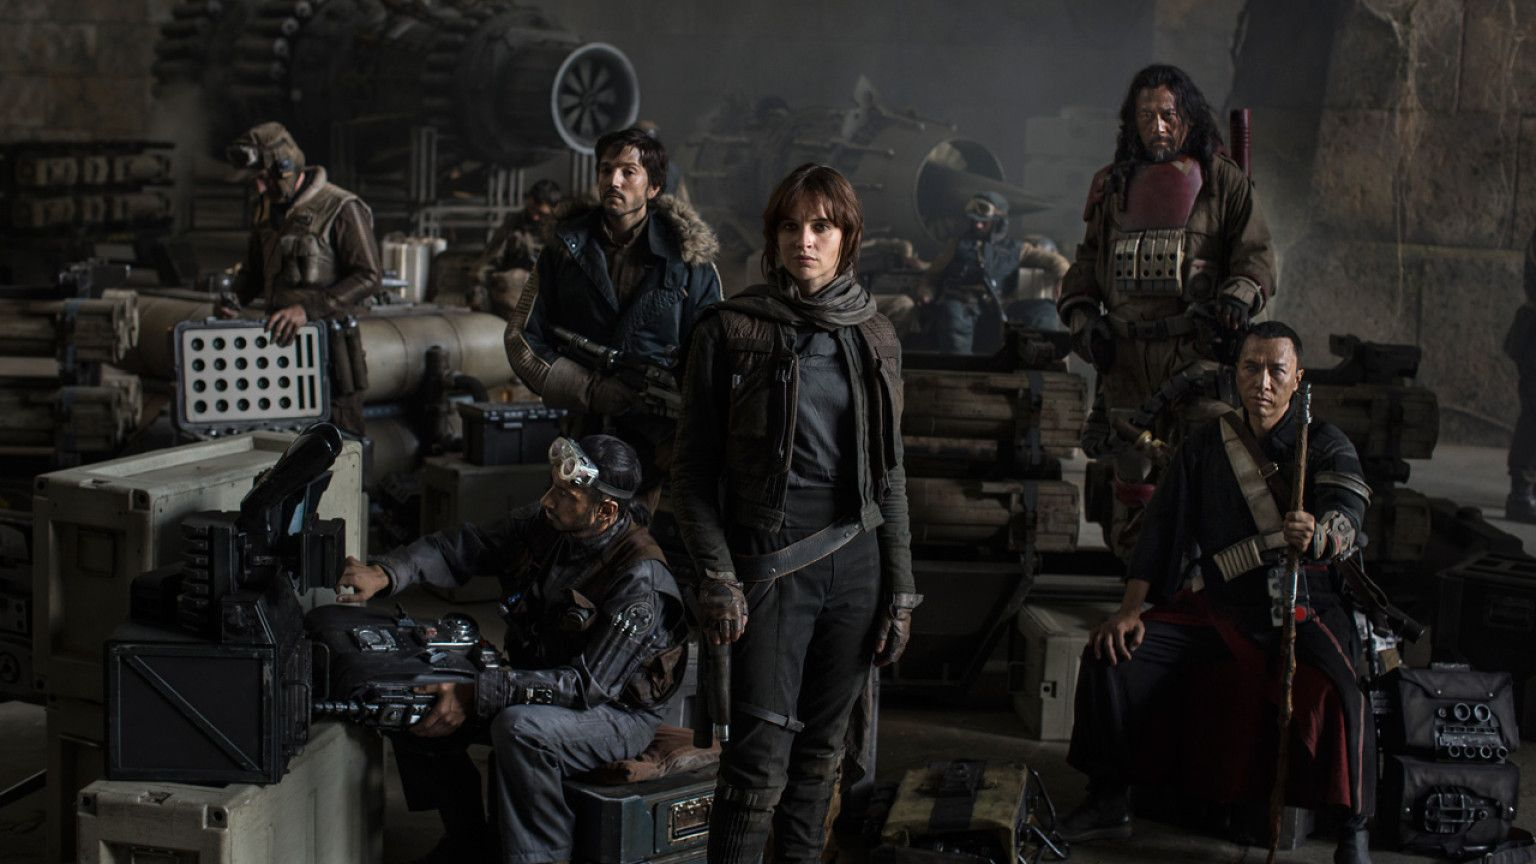 qhqn2jjsgfcczawy6czw_star-wars-rogue-one-cast.jpg